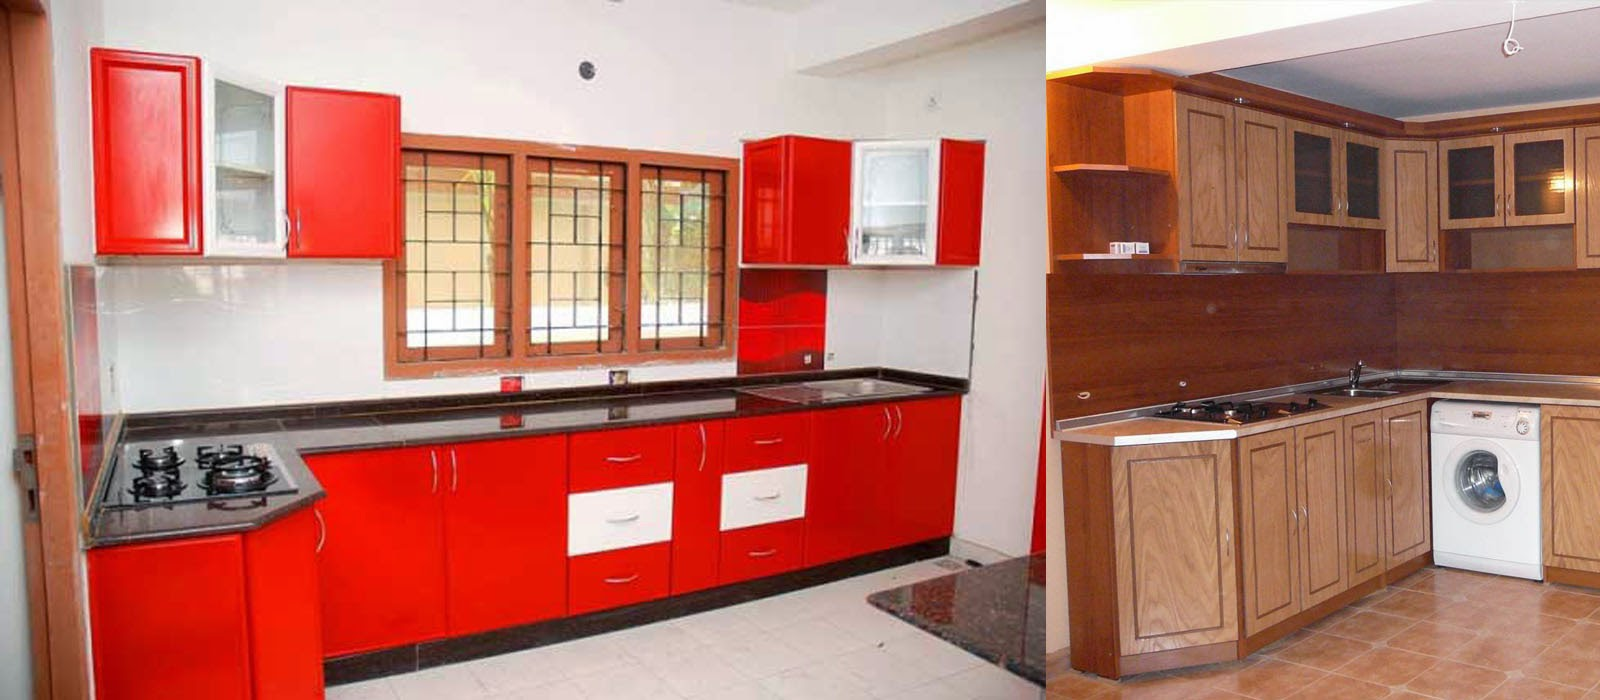 Aluminium fabrication kichen cabinets photos in kerala for Kitchen cabinets aluminium